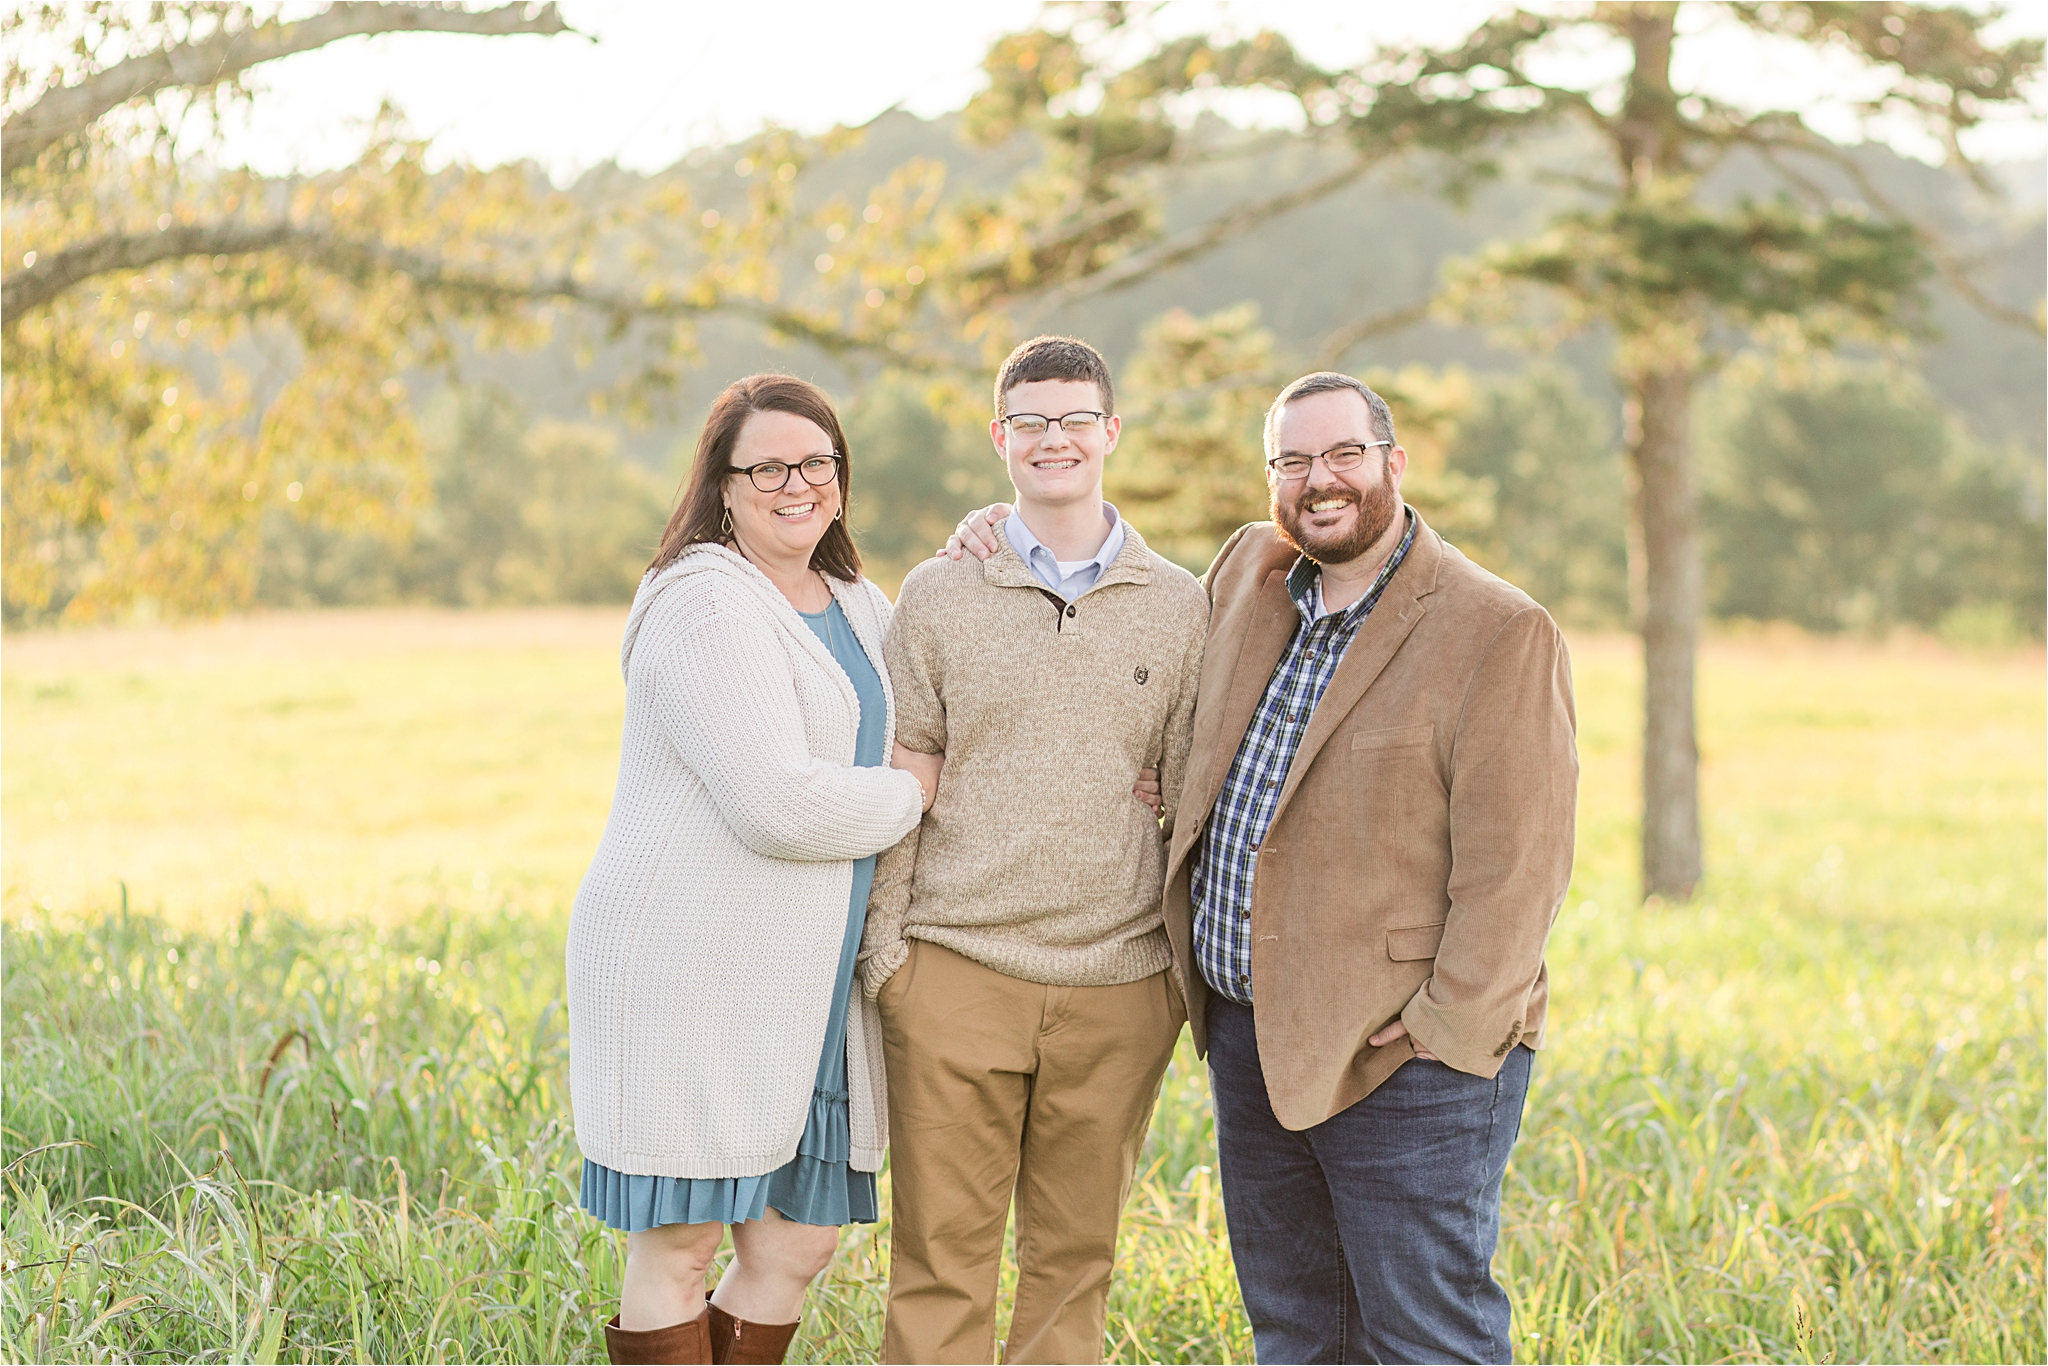 Calling Oneonta Home - Redeemer Community Church - Northern Alabama Photographer